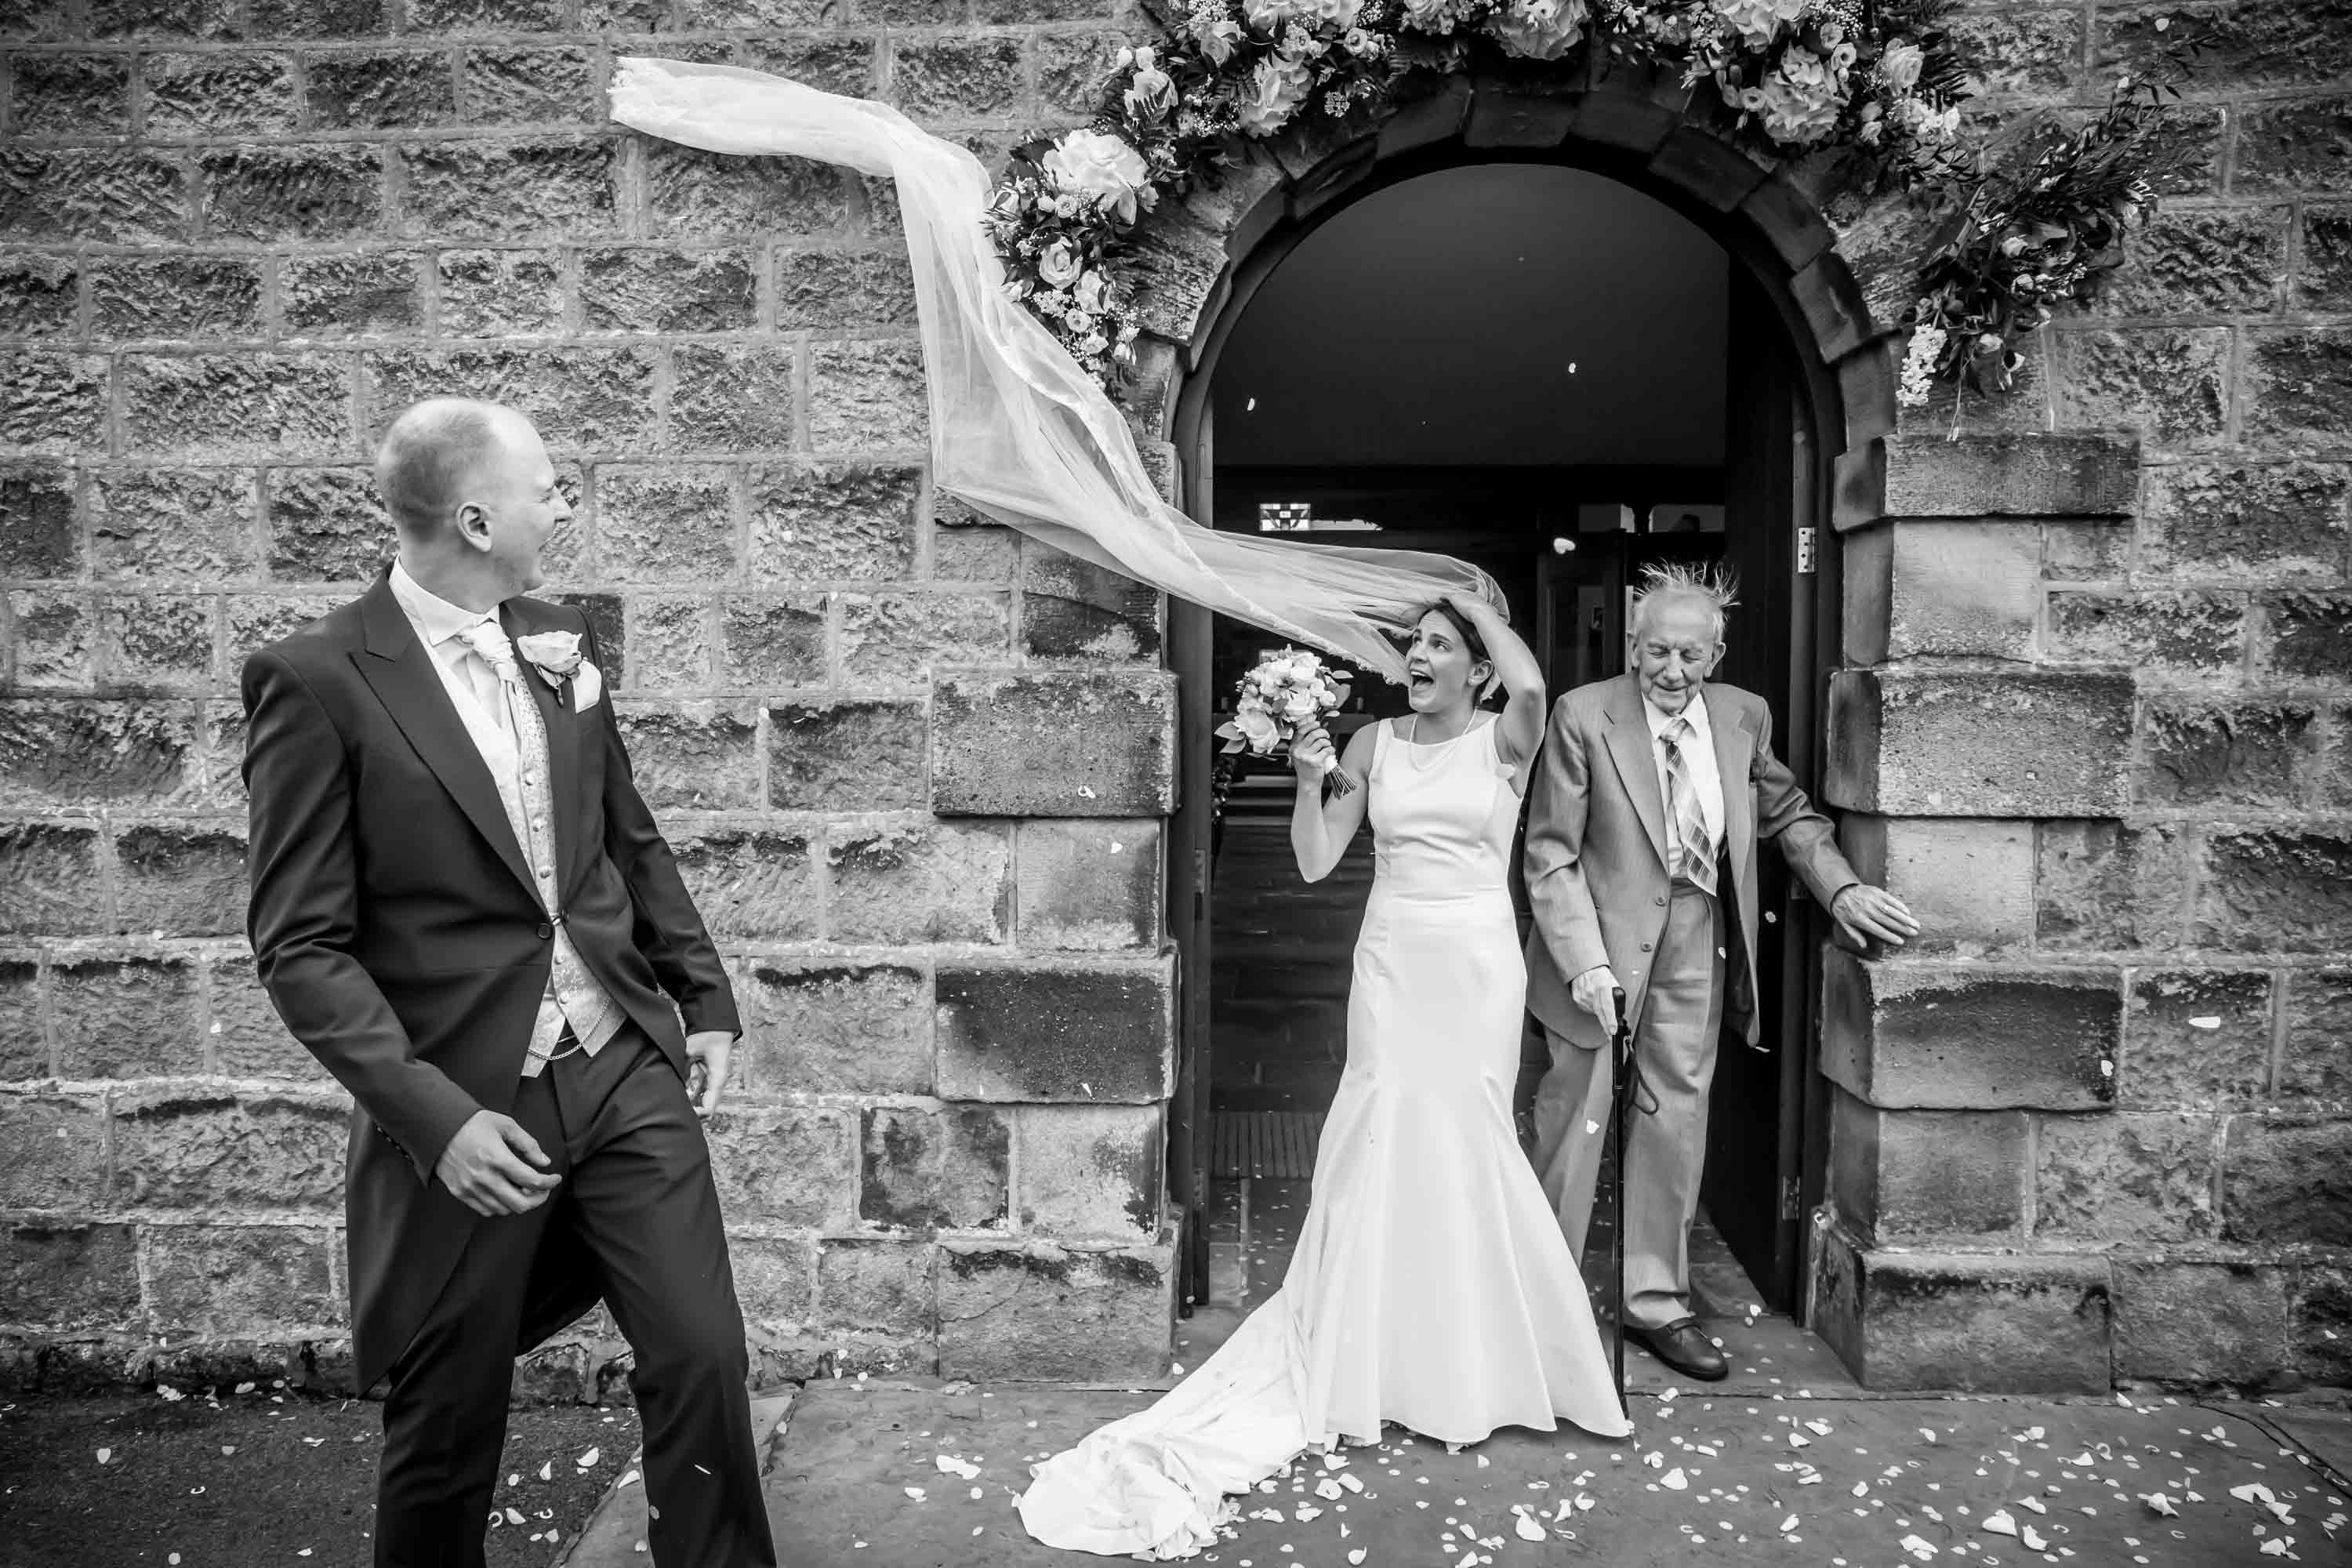 brides veil gets caught on church wall in geometric shape wall as she comes out of doorway